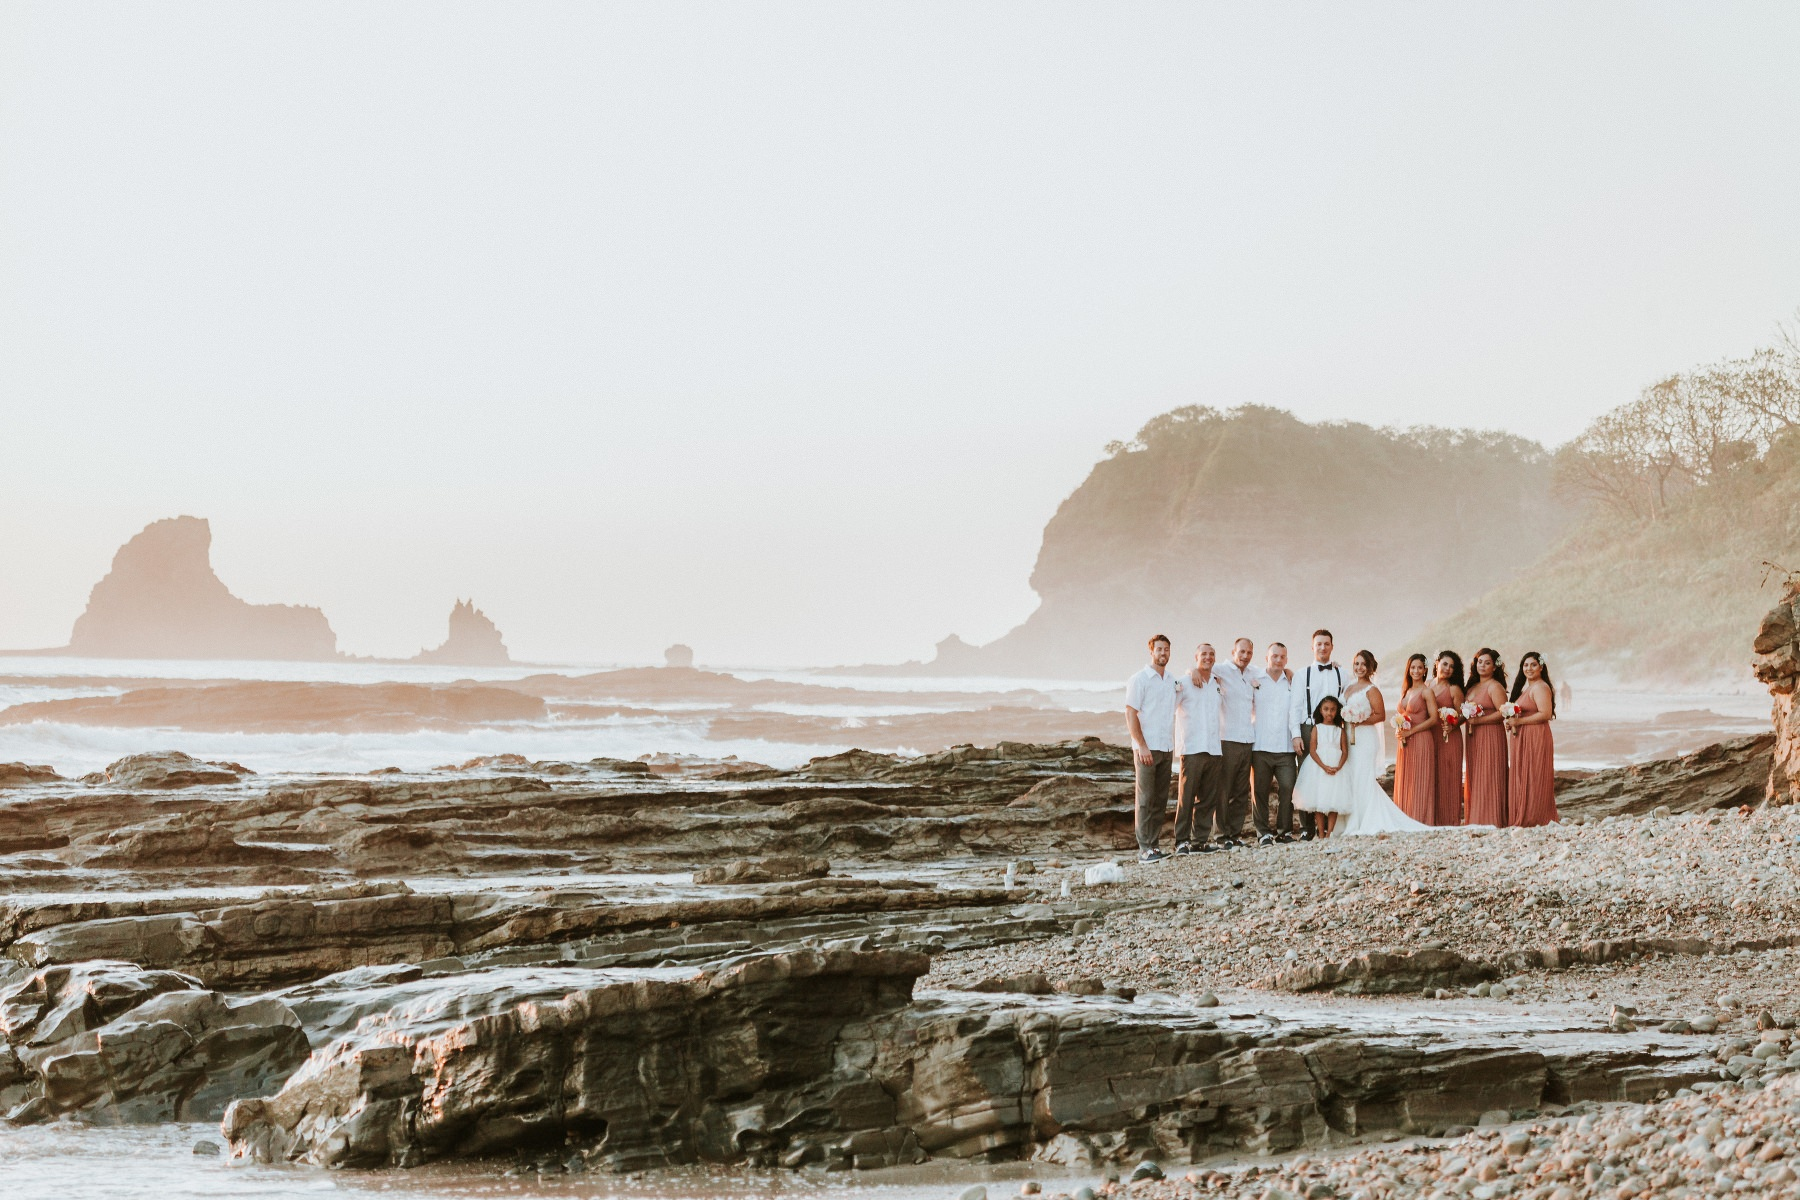 Destination wedding photographer  Maderas Beach Nicaragua. Group photo